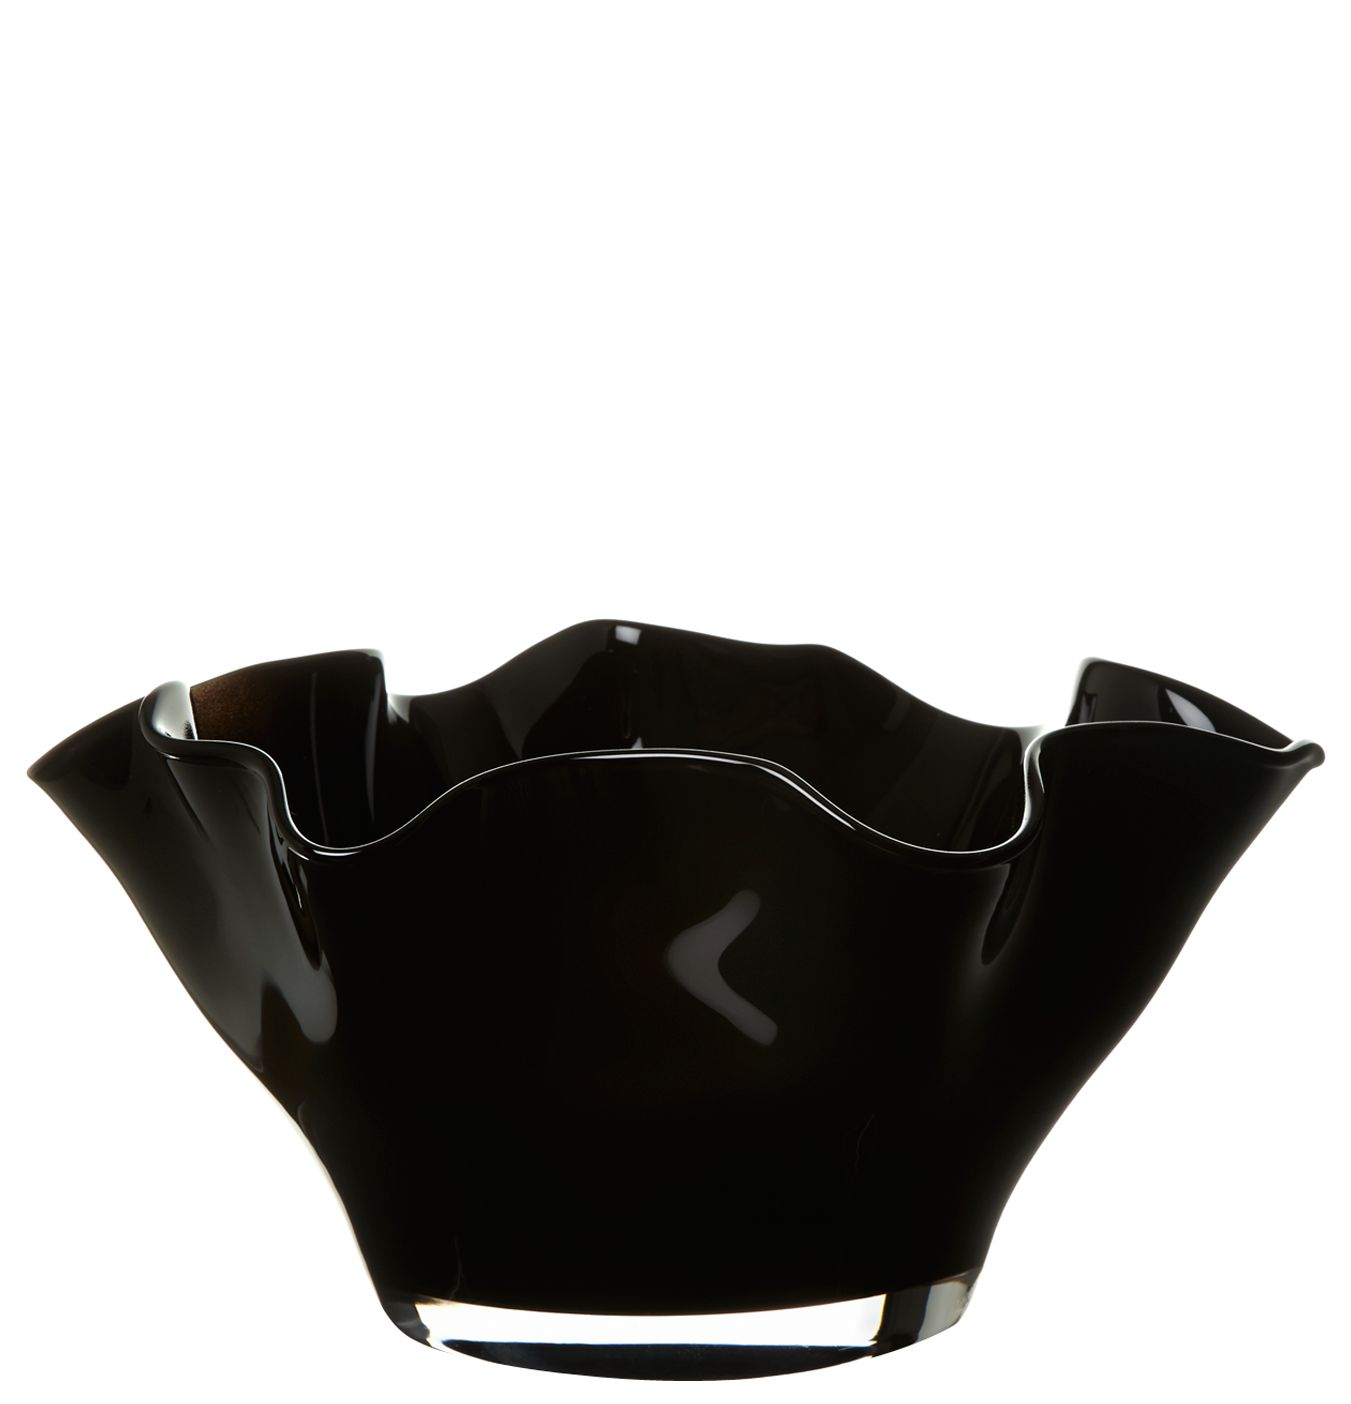 Handkerchief bowl, black